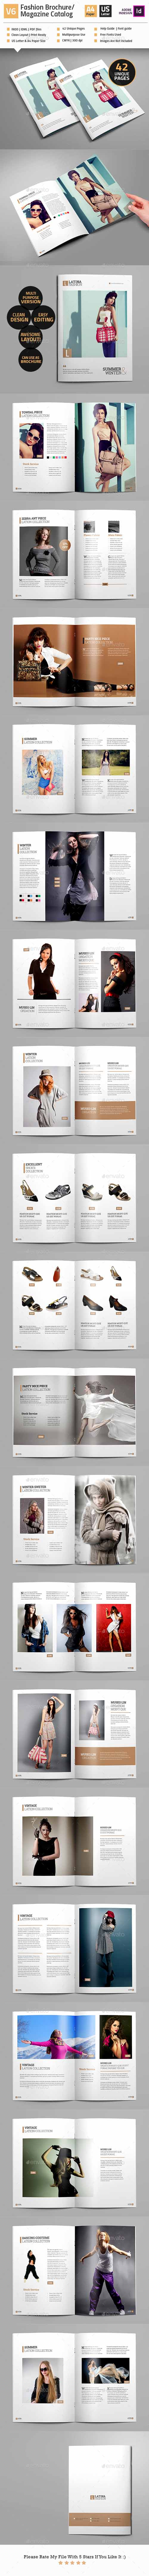 Fashion Magazine/Brochure/Catalog Template V6 15733912